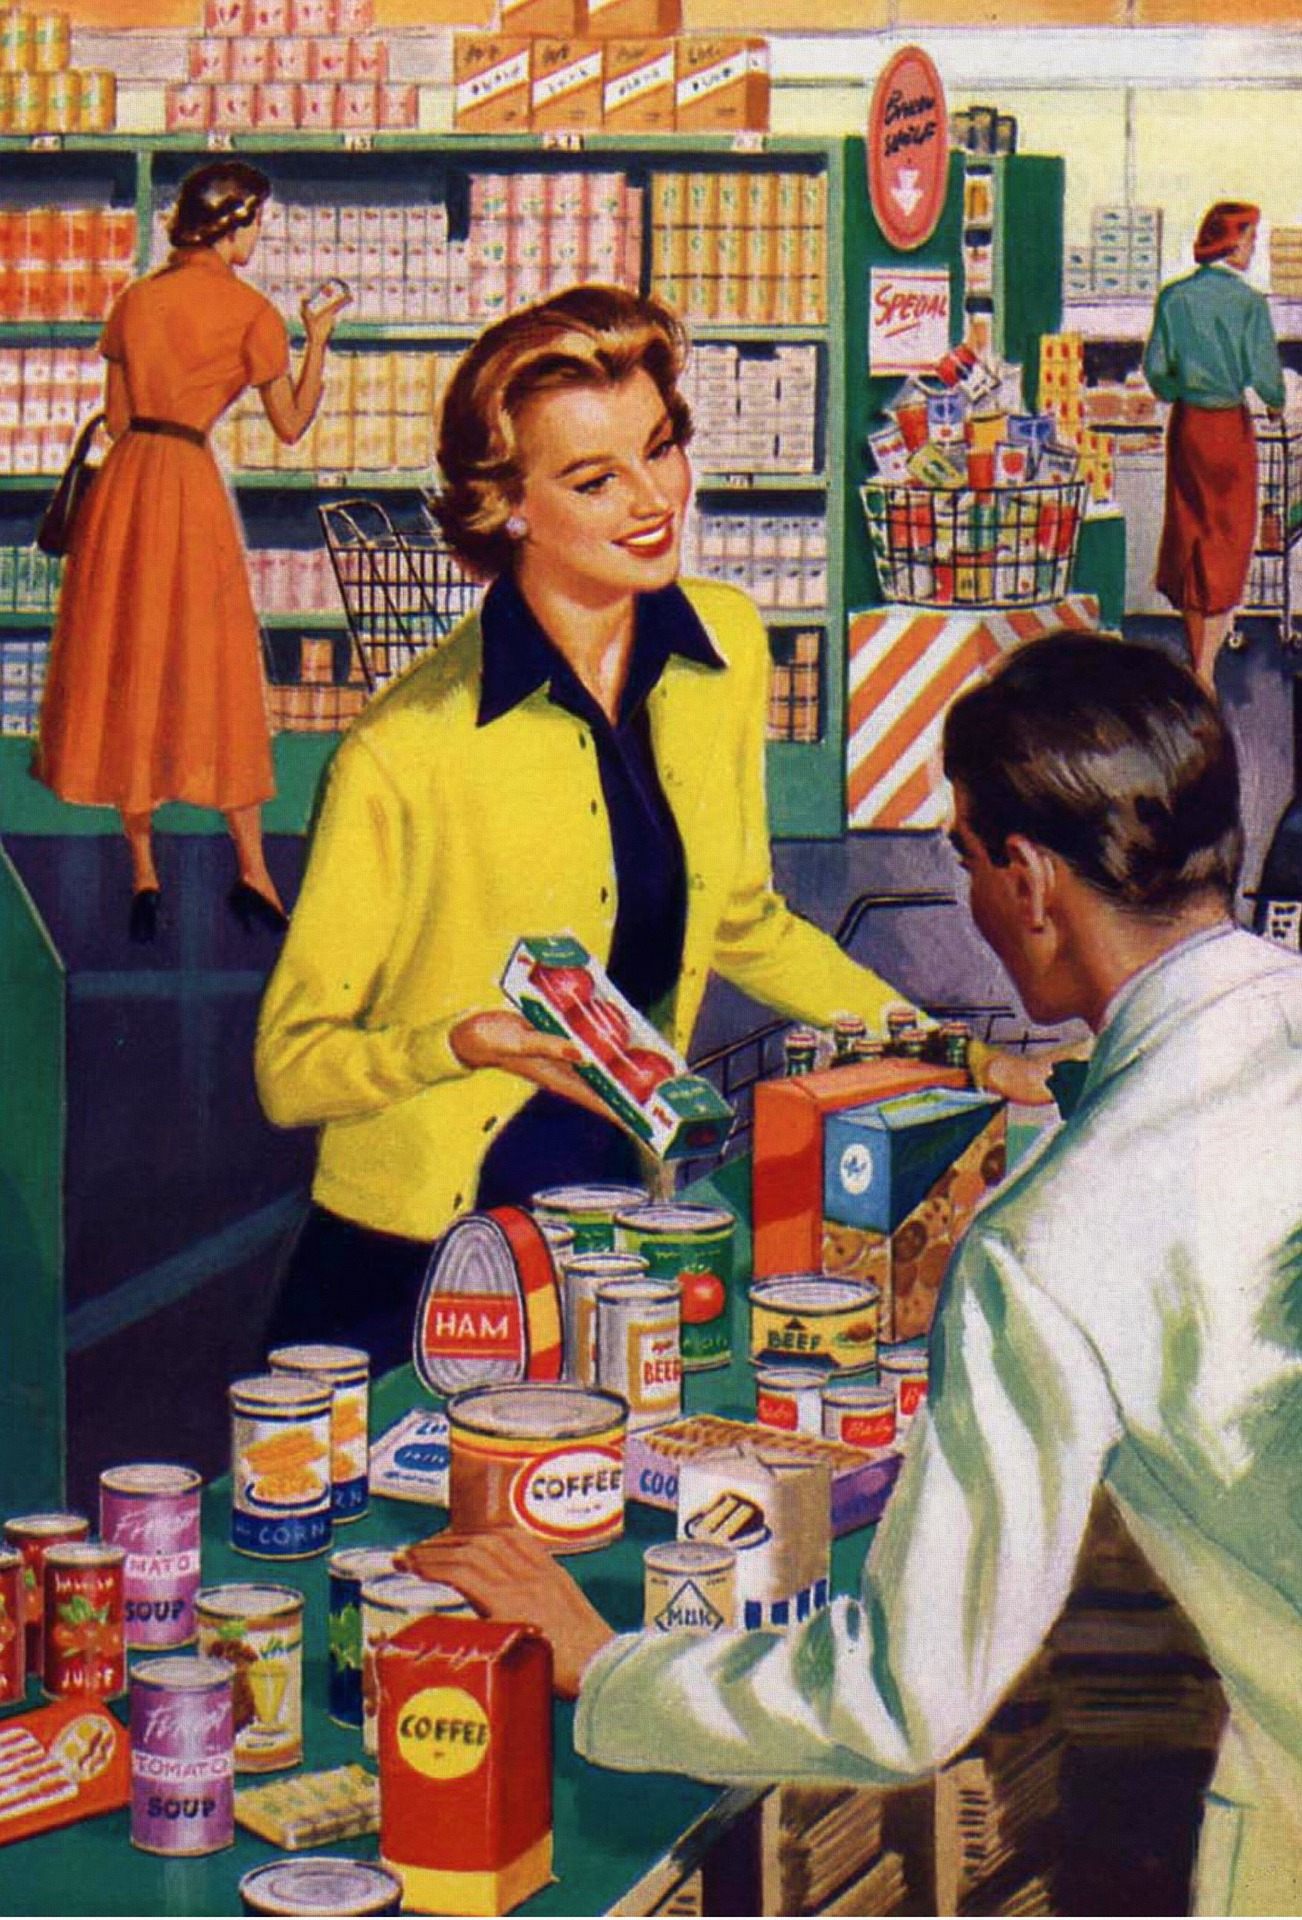 This is an actual artist's rendering of me shopping. I'm so happy. I'm so pretty. And who doesn't love ham in a can?